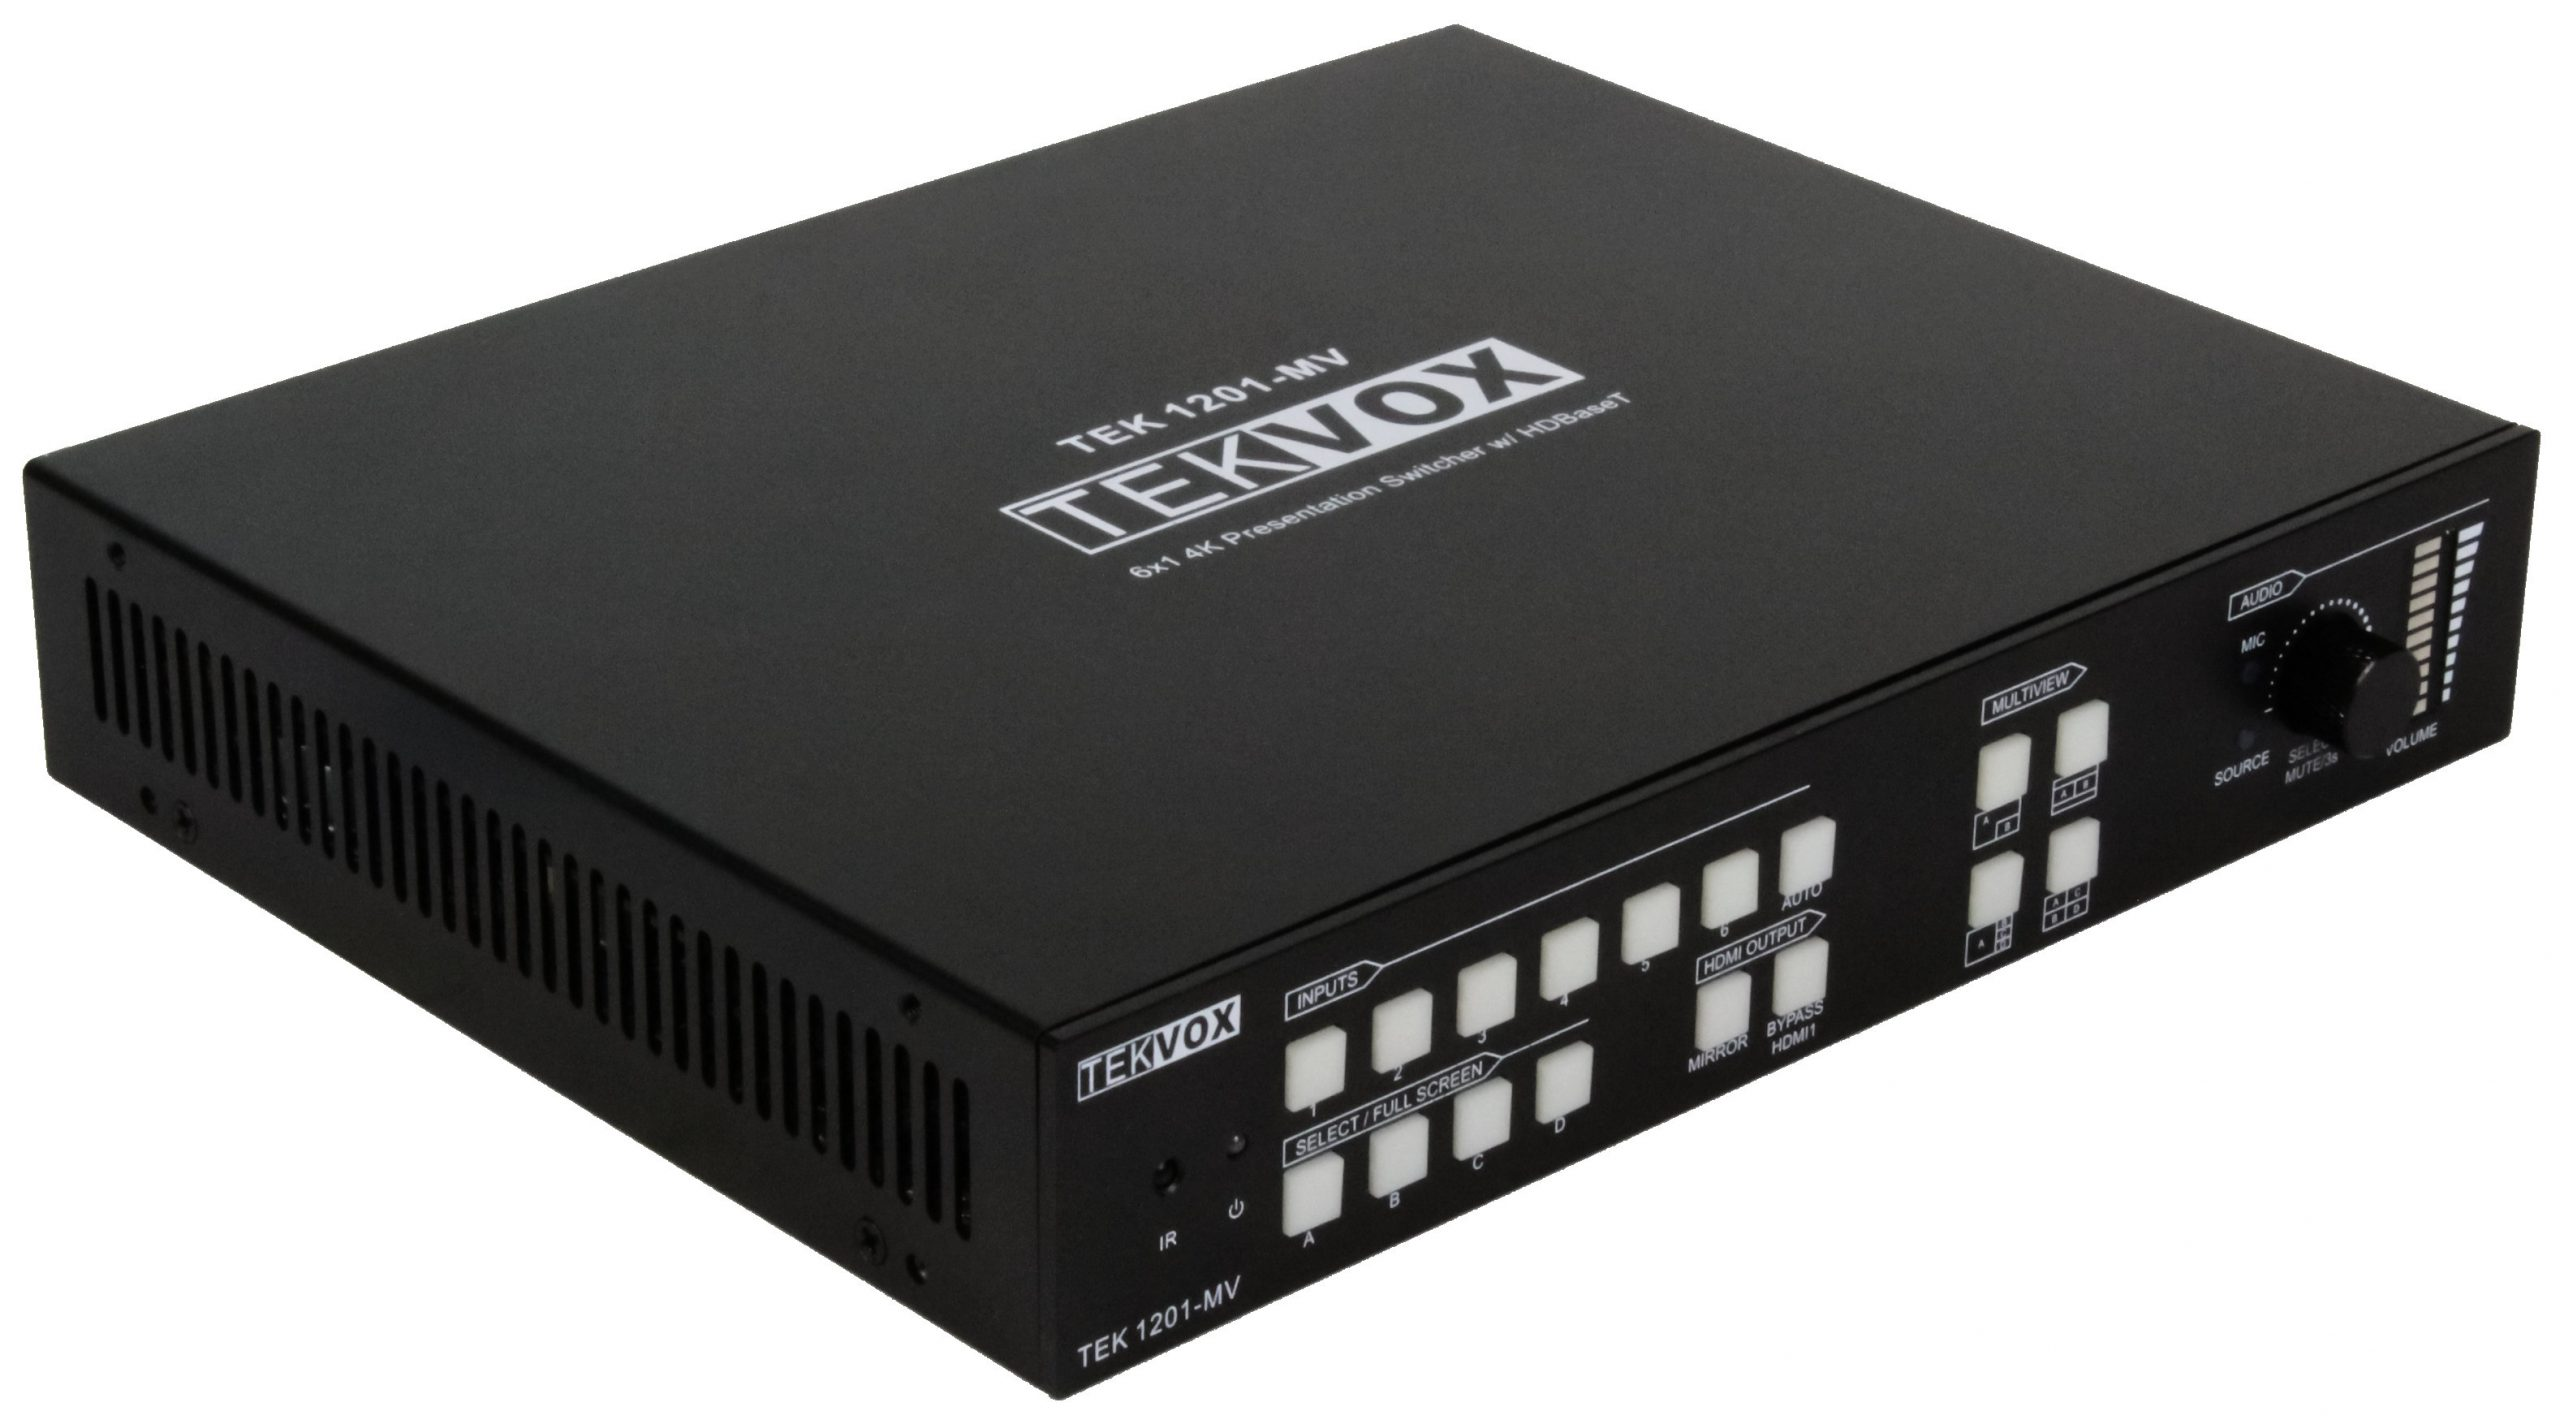 1201-MV 4K Presentation Switcher